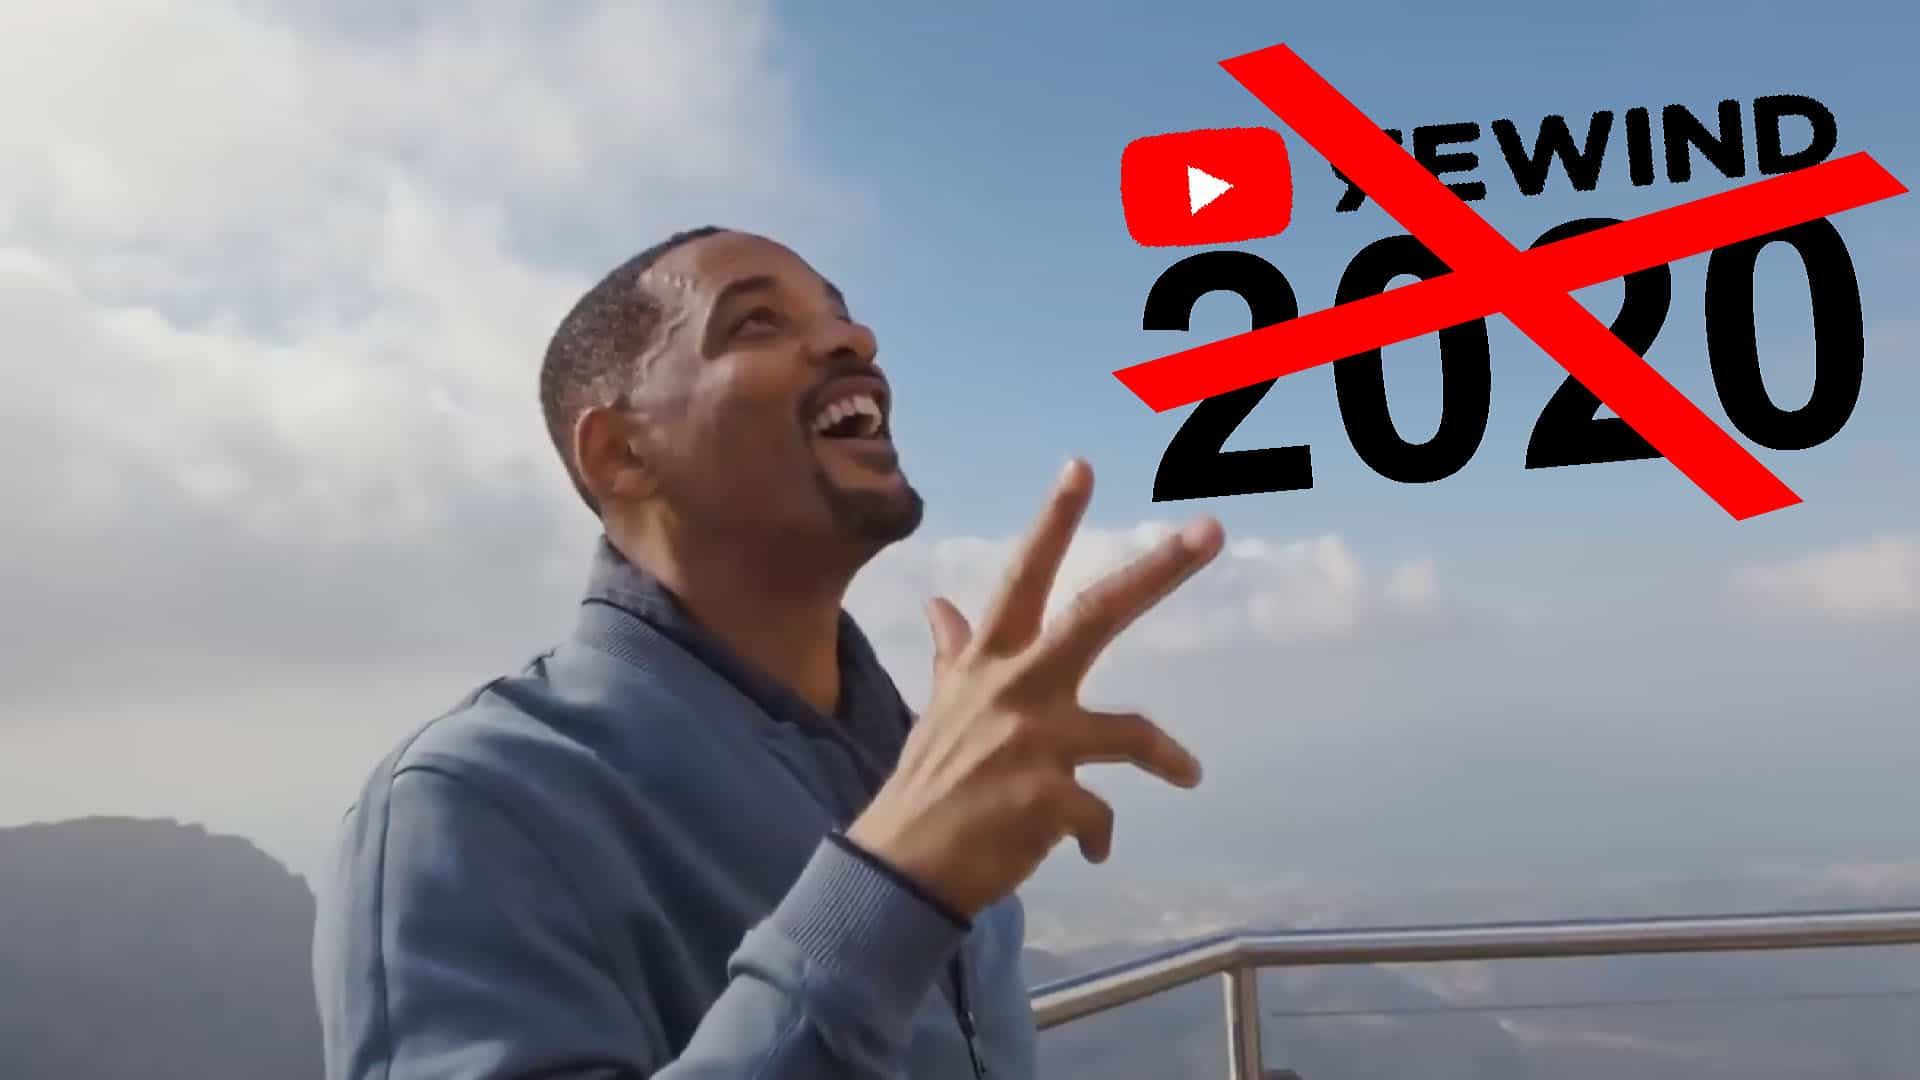 YouTube Rewind 2020 Not Happening As No One Wants To Relive This Year